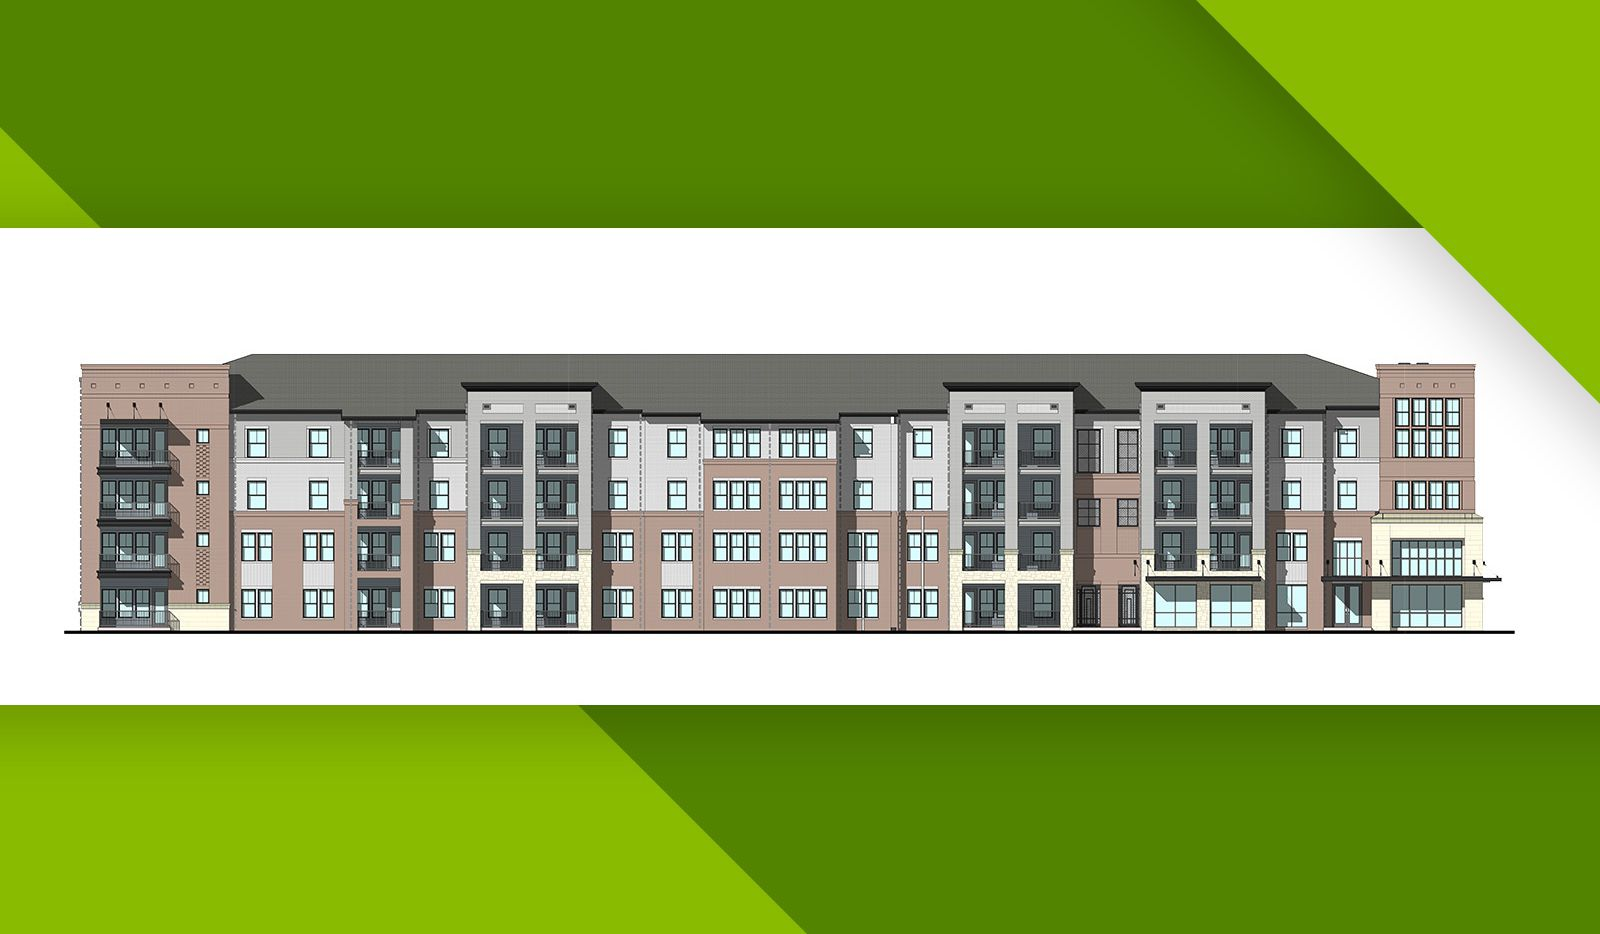 A rendering of what the 329 apartment and townhome units will look like at LIV Development's latest project in downtown Prosper.